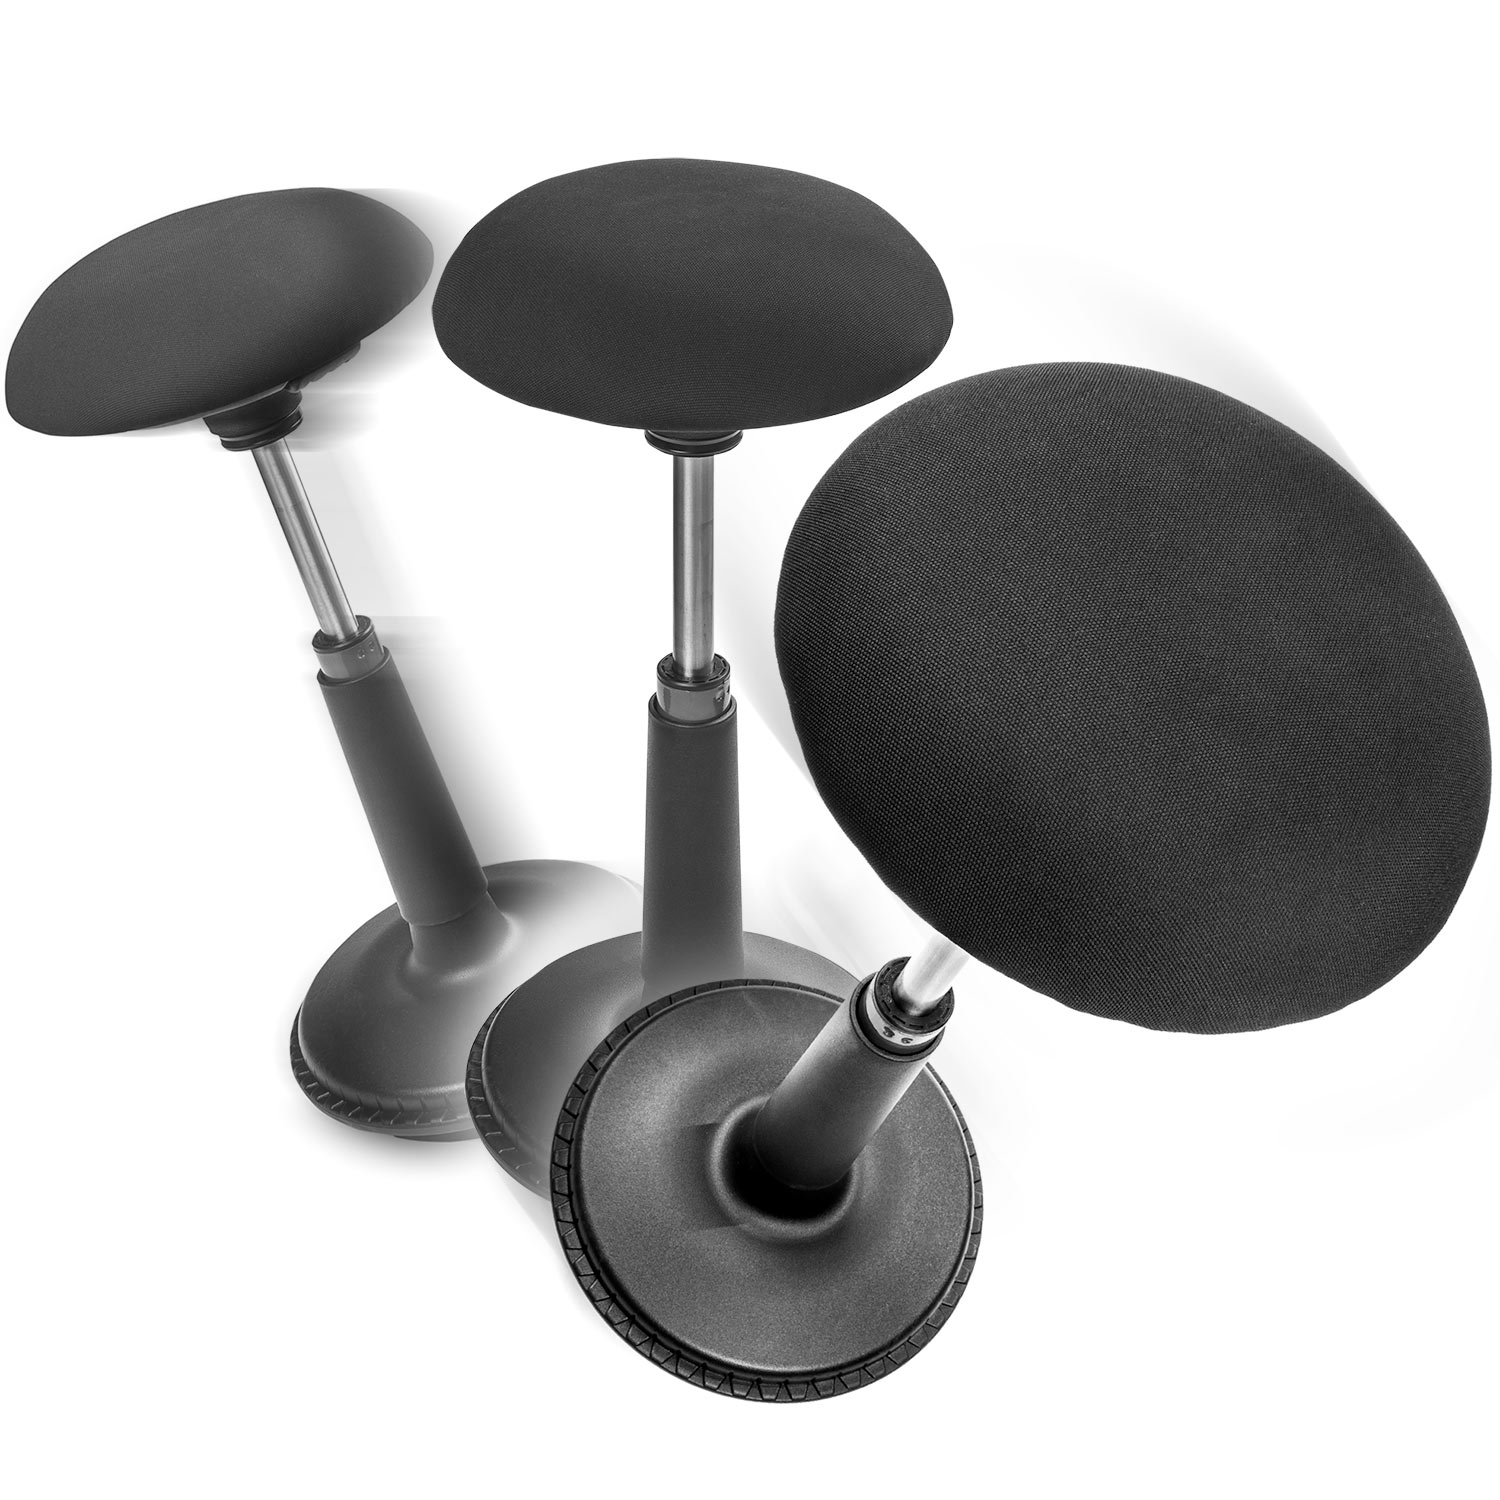 Active Sitting Chair Ergonomic Wobble Chair Active Sitting Stool Adjustable Height